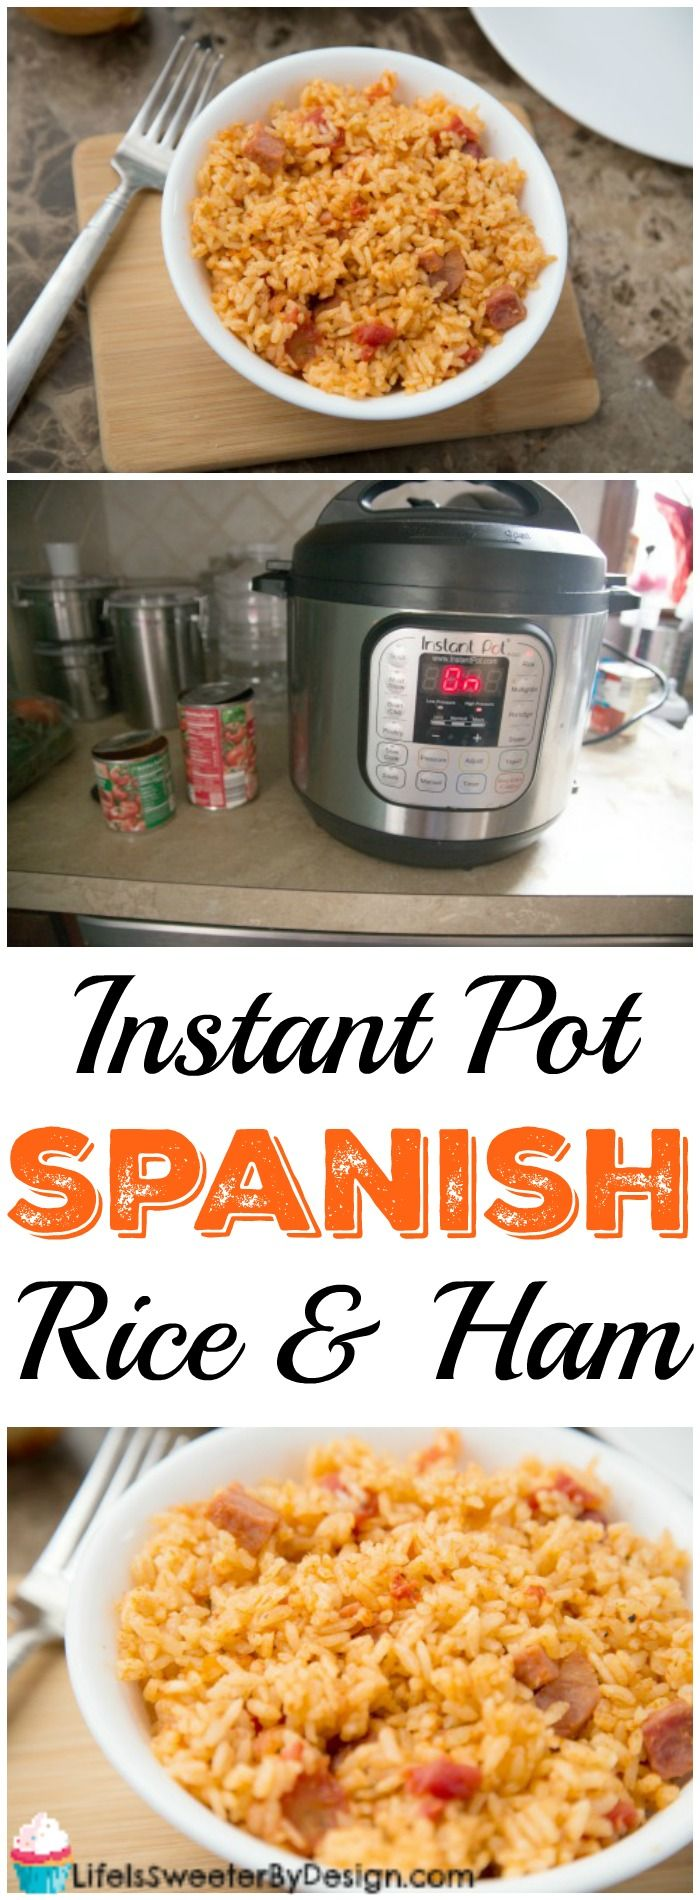 Instant Pot Spanish Rice with Ham is a delicious electric pressure cooker recipe that is great for a side dish or even a light meal. This Spanish Rice recipe will become a family favorite and is so quick to make in the Instant Pot!